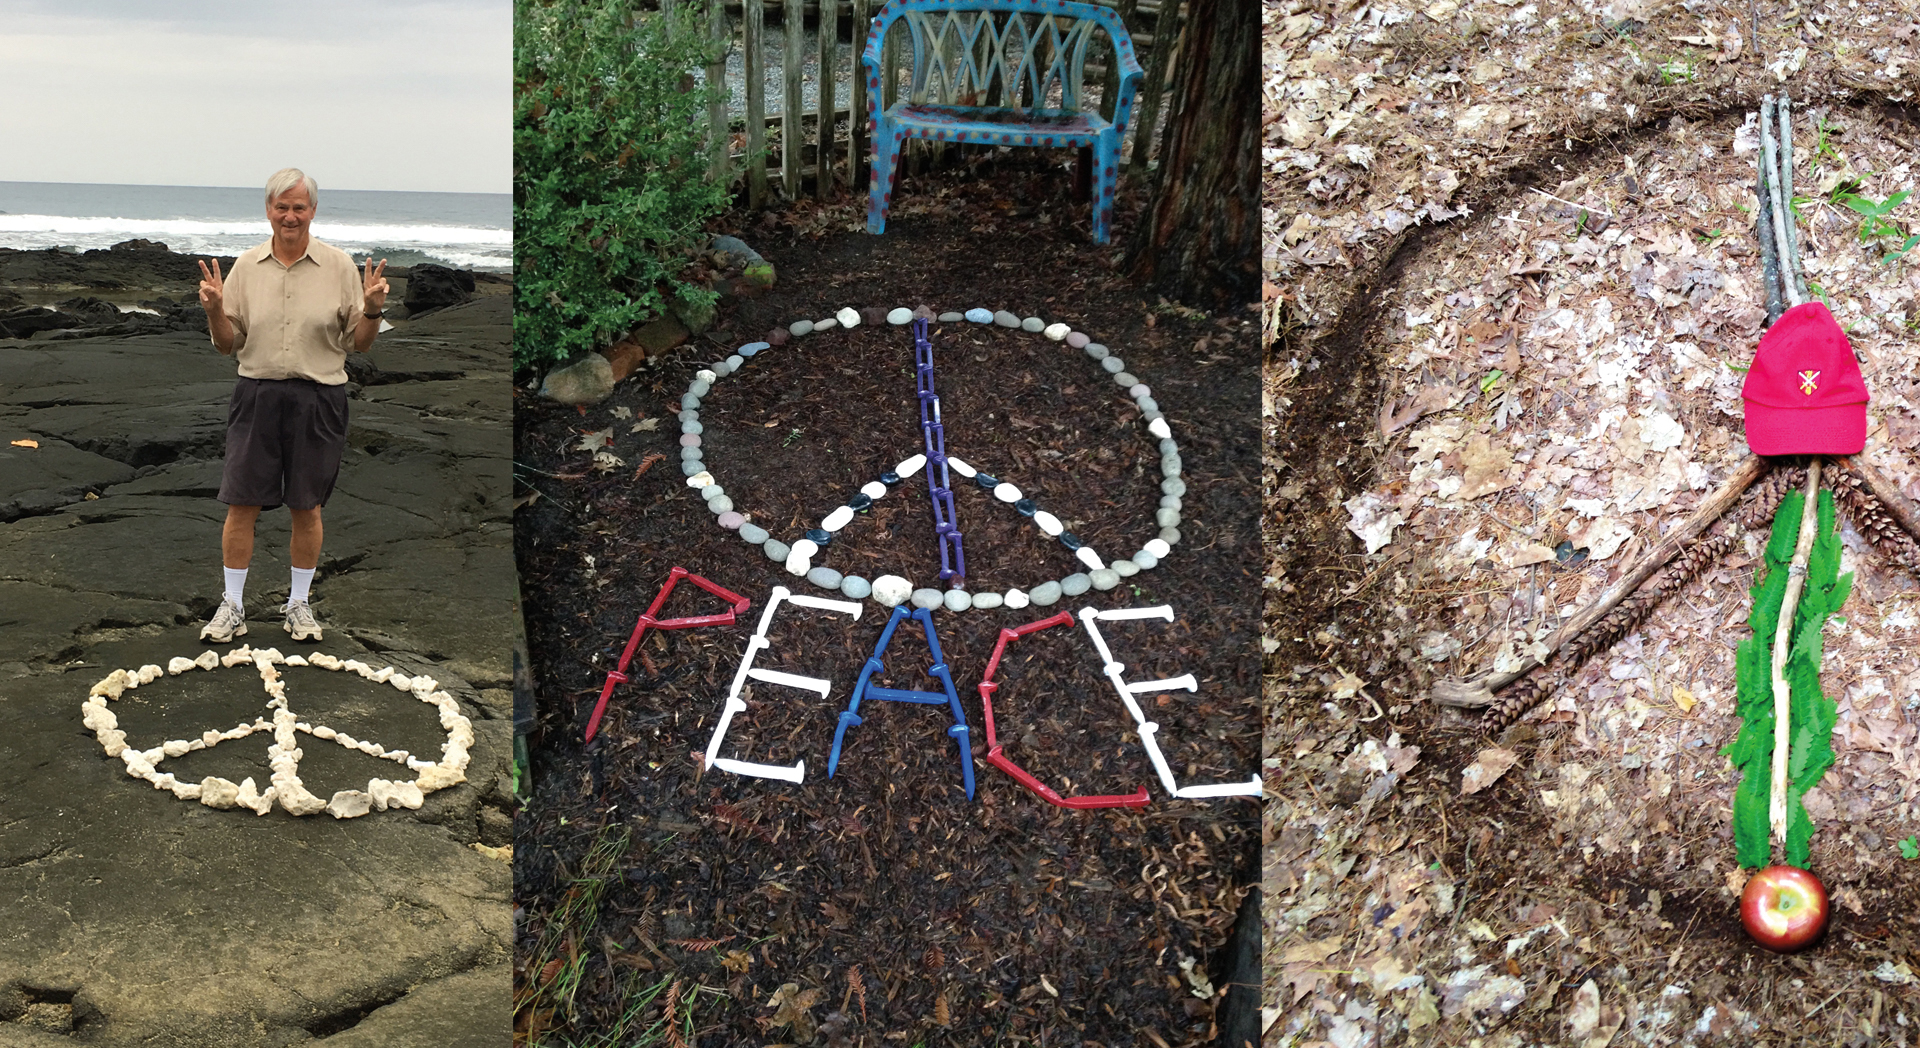 Stuart Douglas '61 with a sampling of peace signs he has created during his travels.